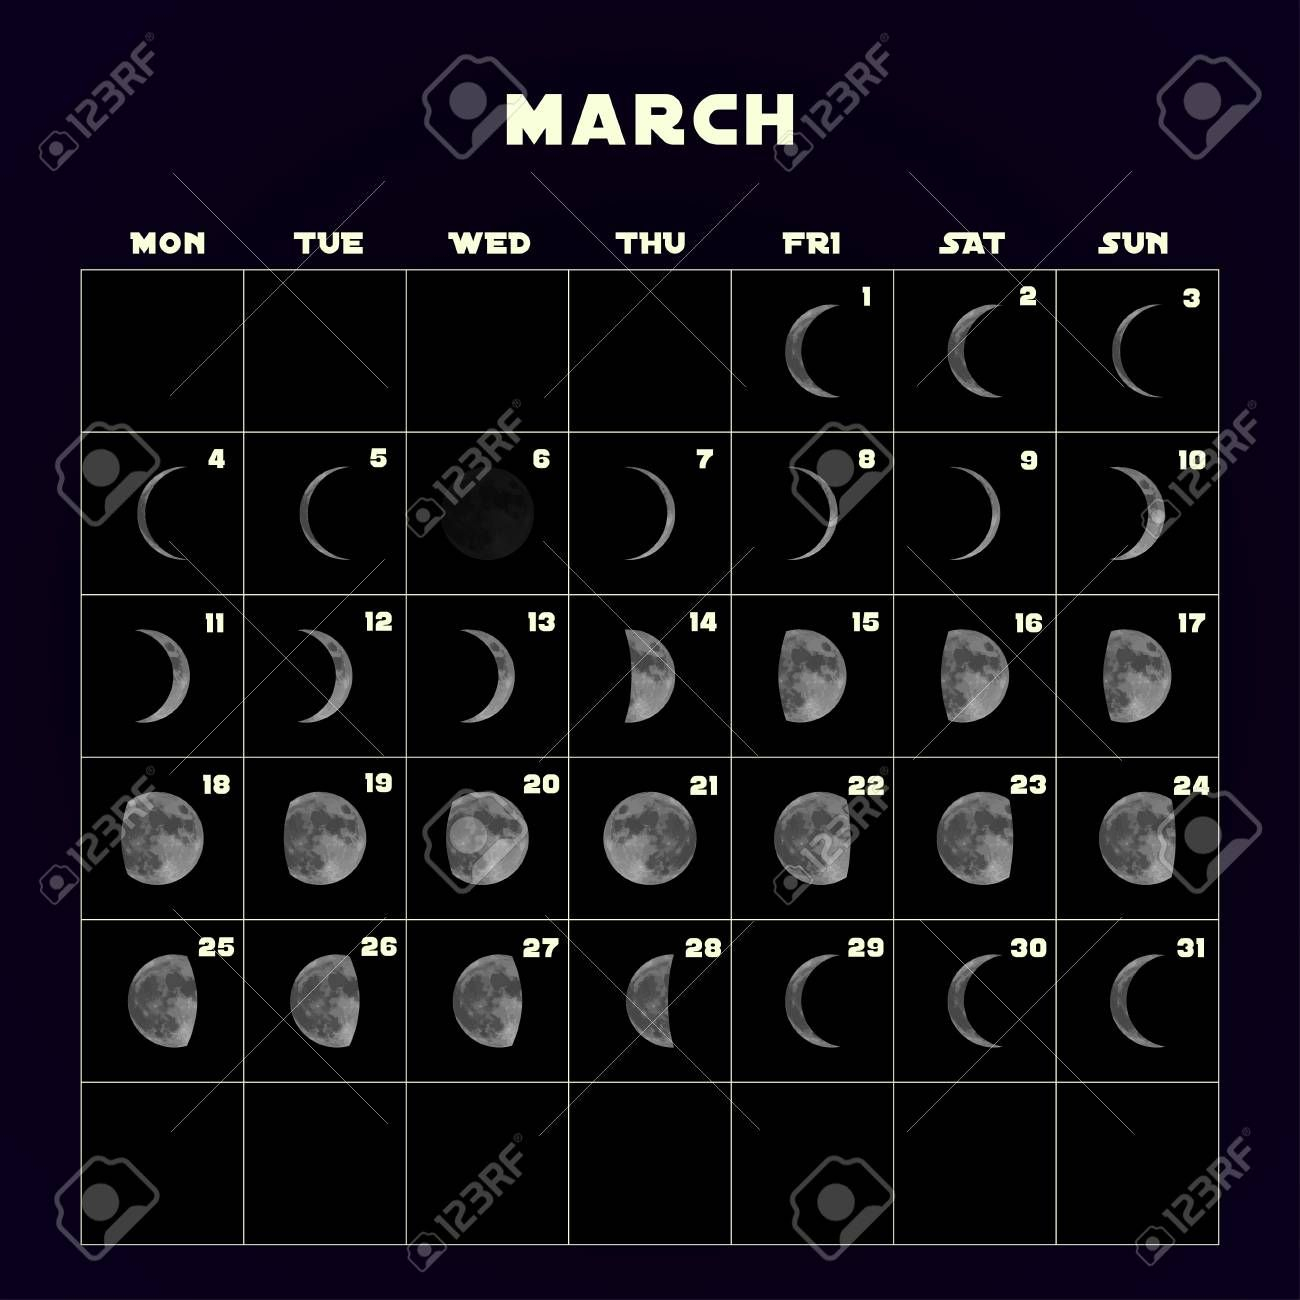 2019 March Calendar Moon Phases #march #mooncalendar #moonphases